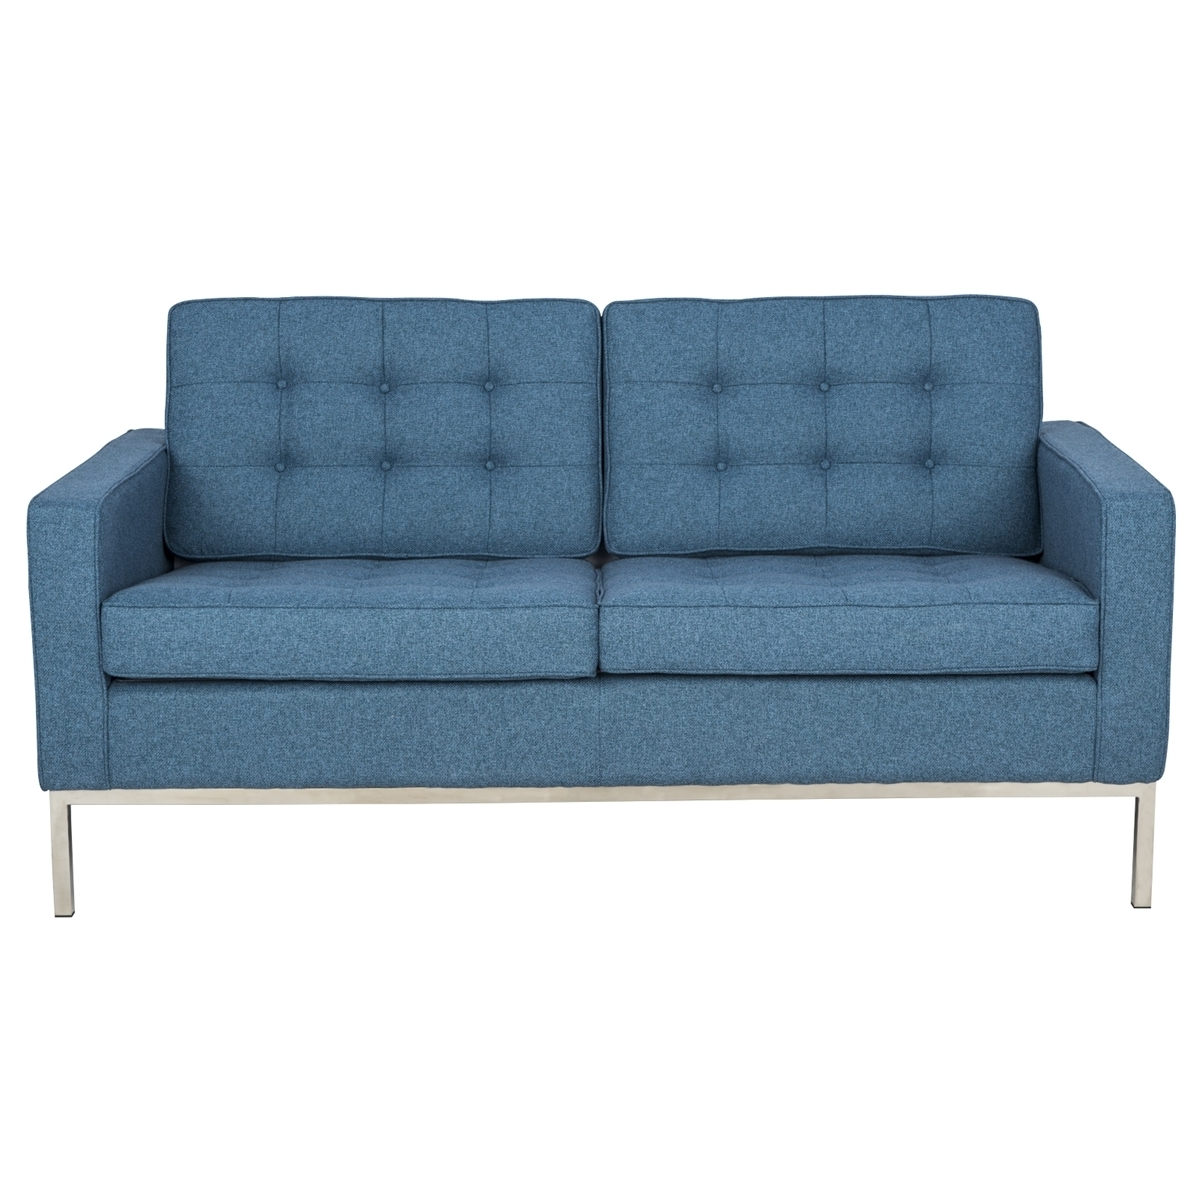 Modern Florence Style Loveseat Sofa In Blue Tweed Cashmere Wool For Widely Used Florence Sofas And Loveseats (View 9 of 20)